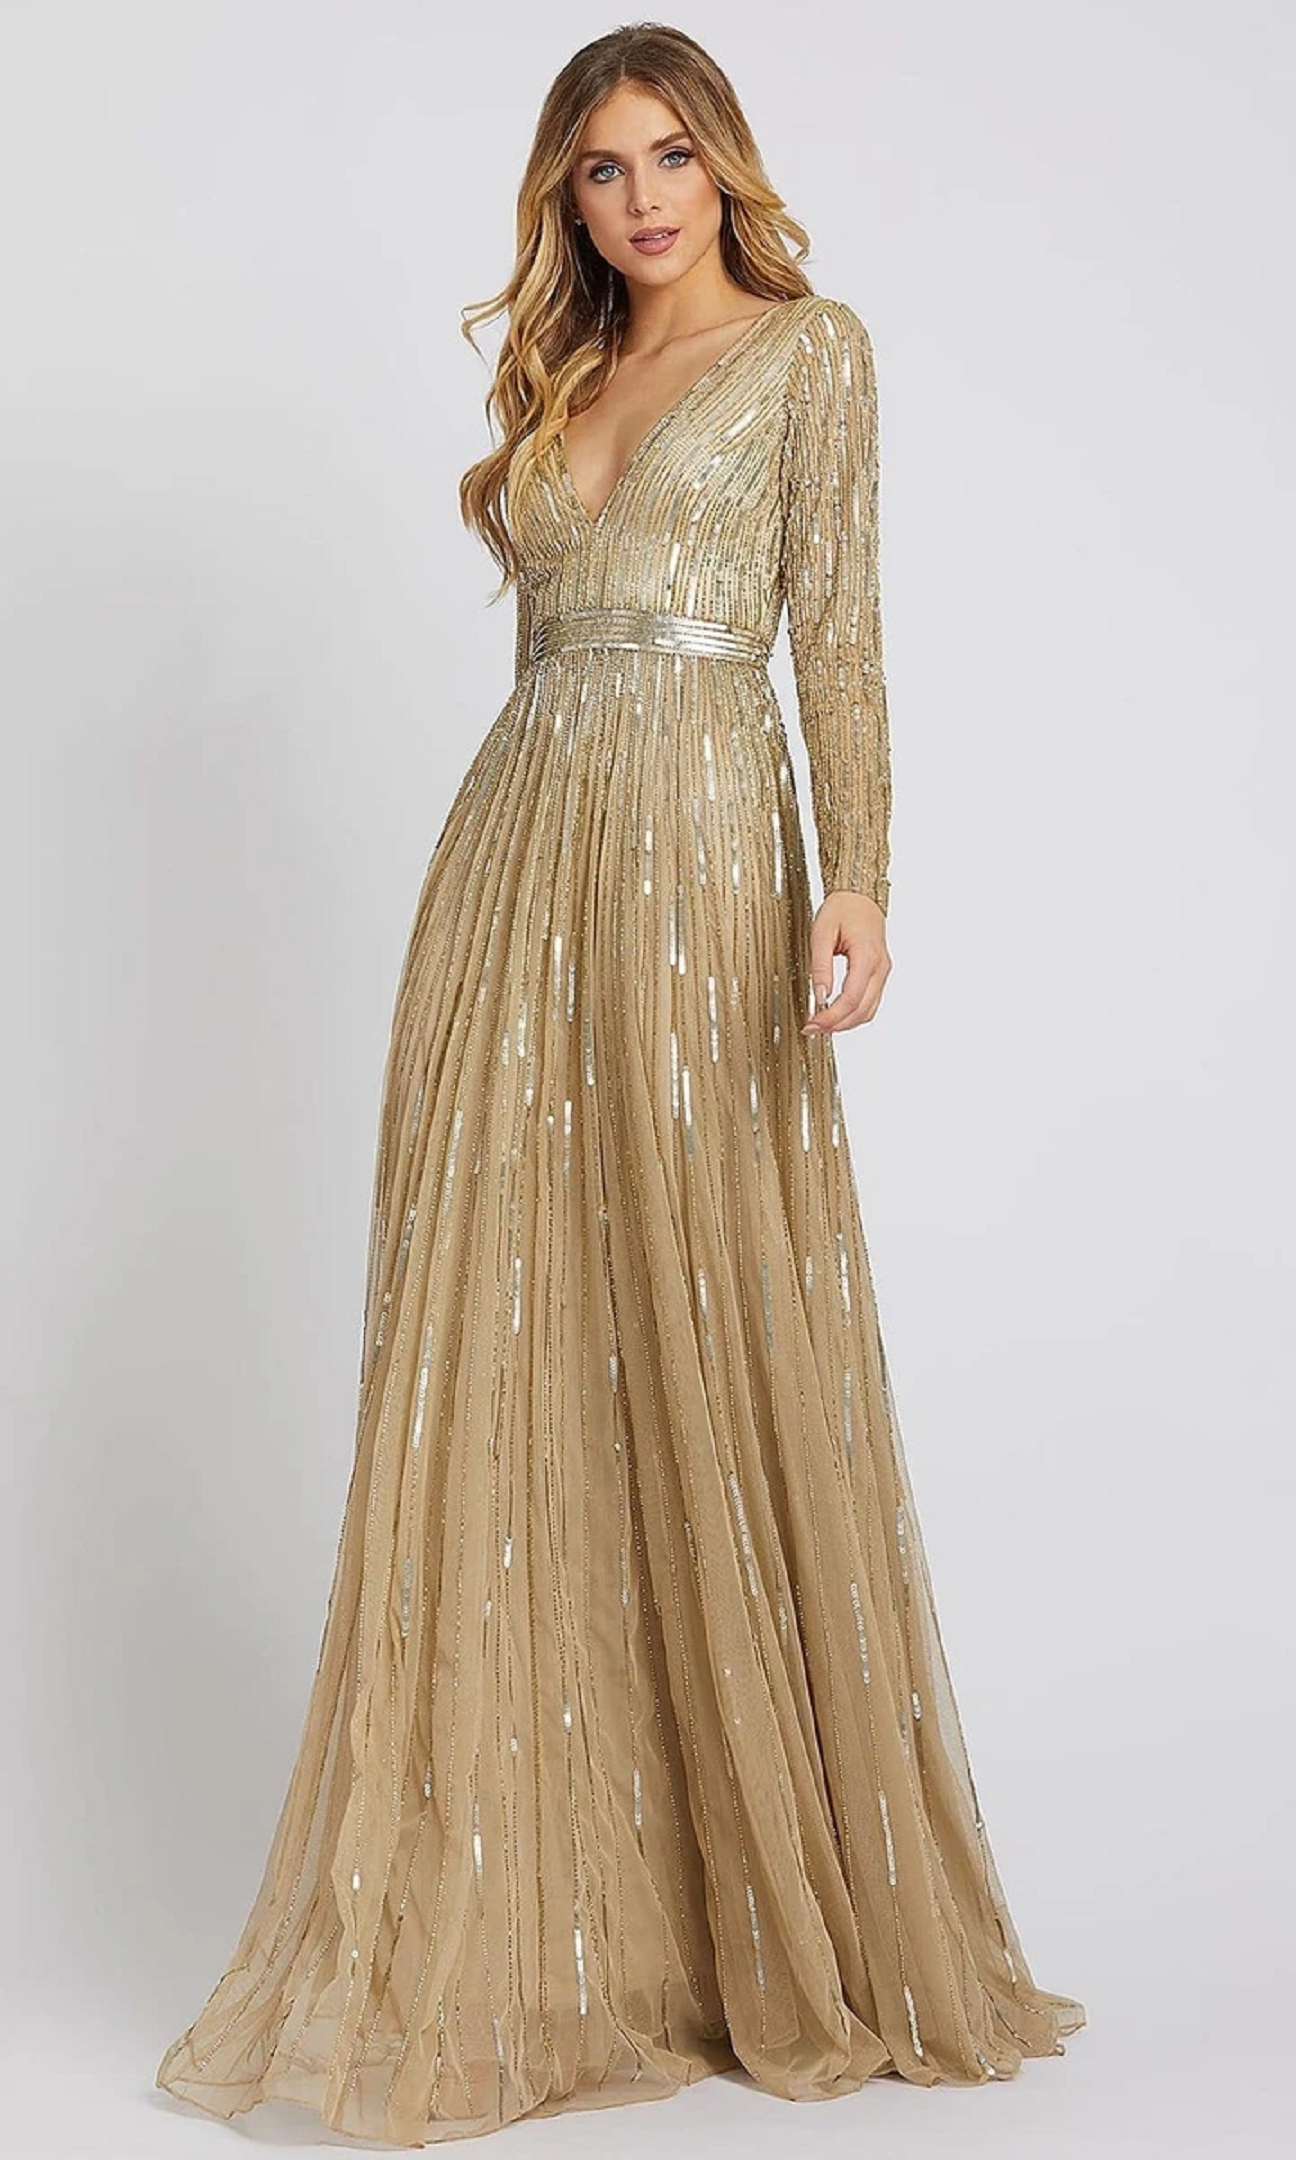 Best bling dresses online 2021 Glittering Gold Sequin with Long Sleeves and Deep V-Neck A-Line Gown